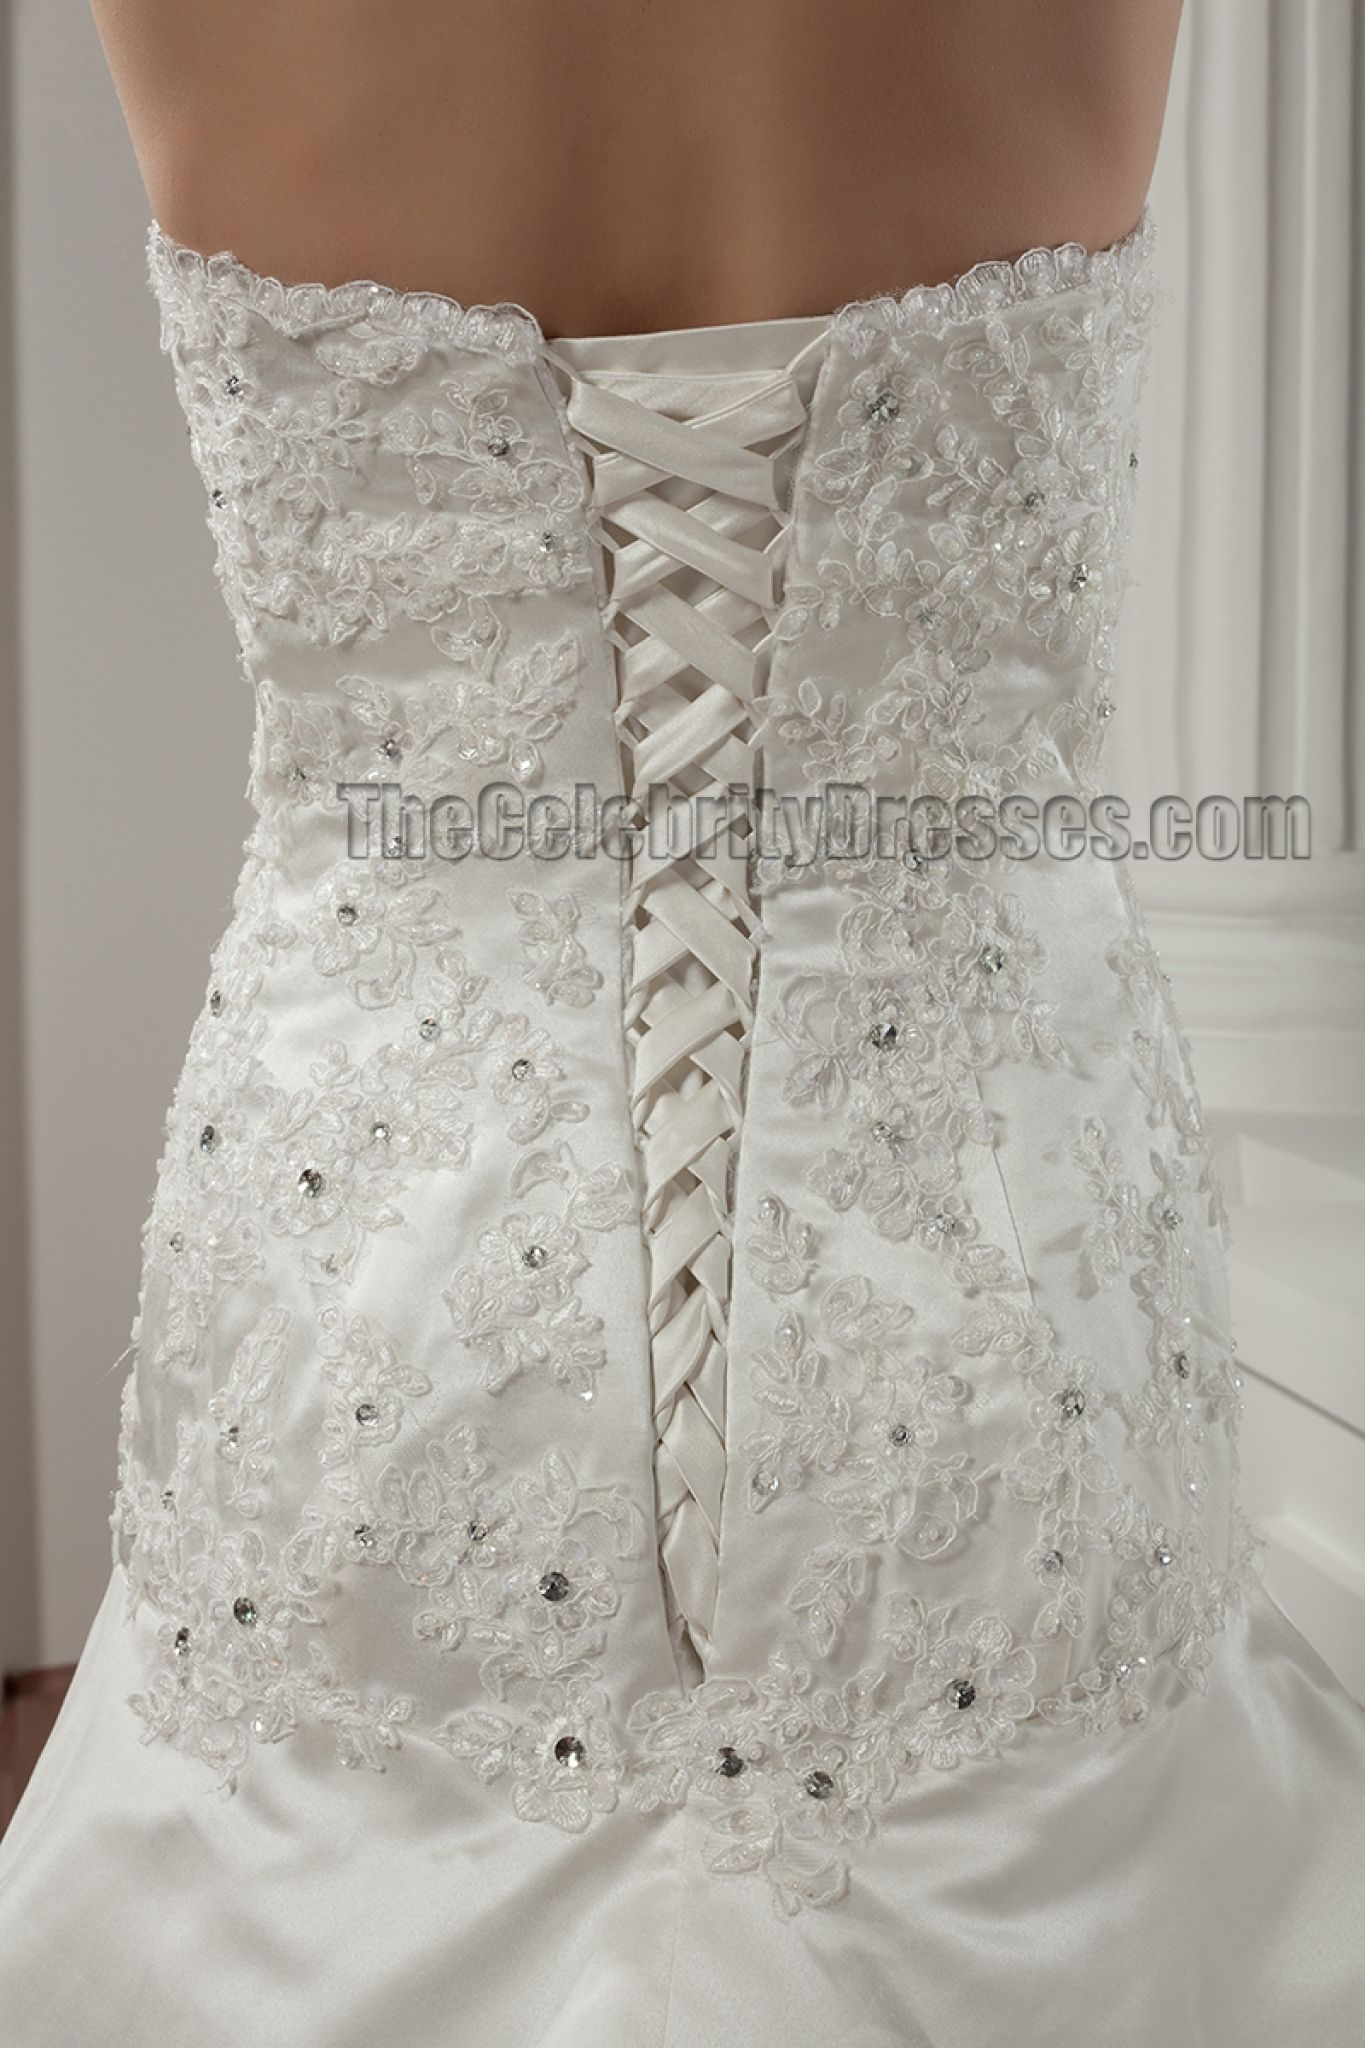 Lace up wedding dress best wedding dress for pear shaped check